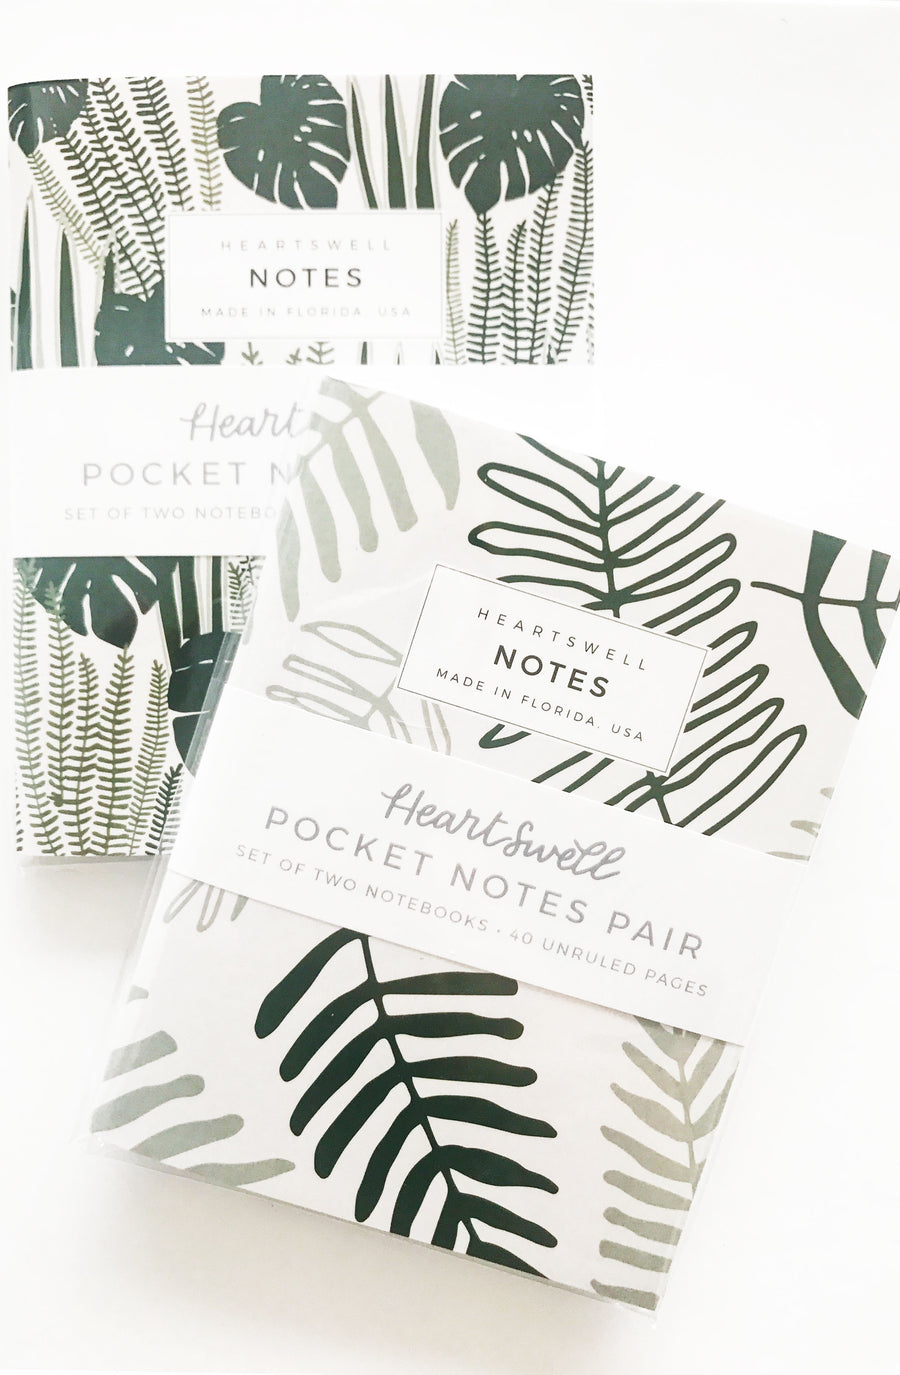 heartswell jungle notebook pair